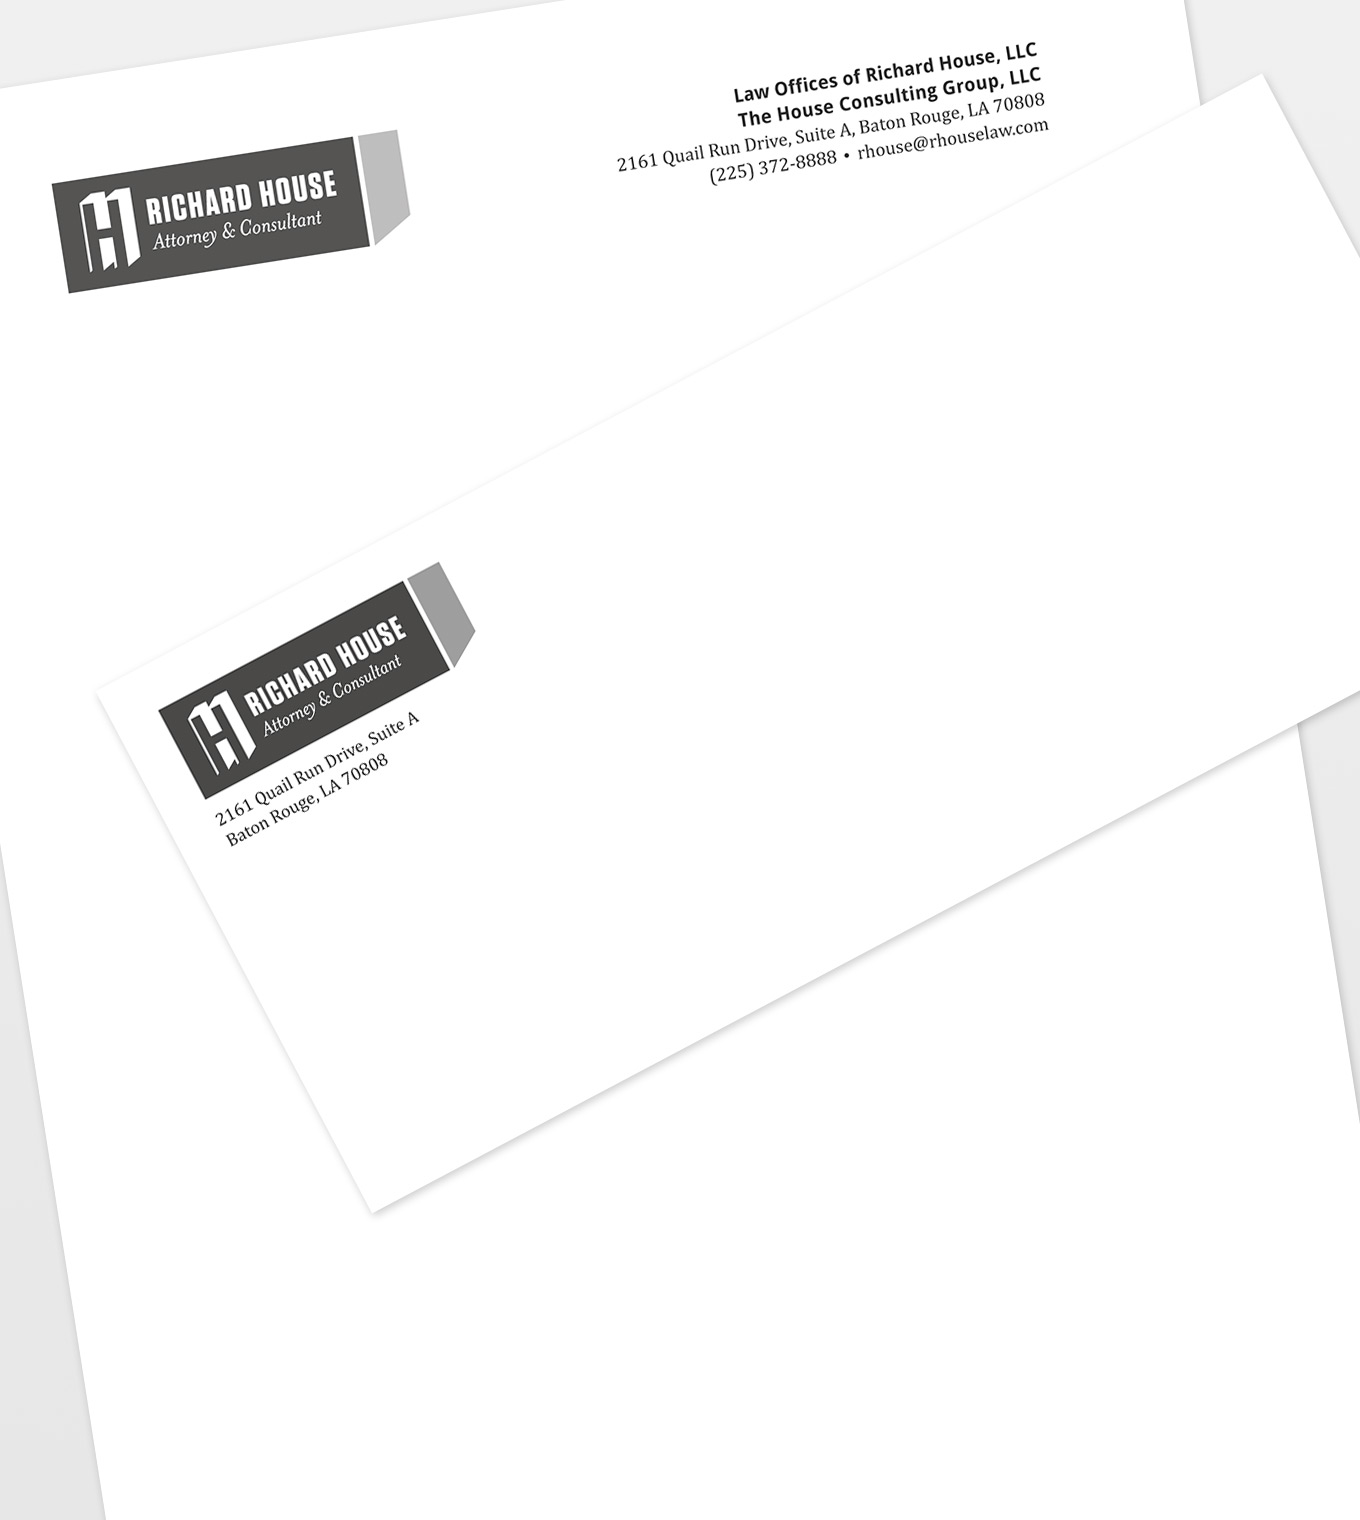 Richard House Letterhead & Envelopes